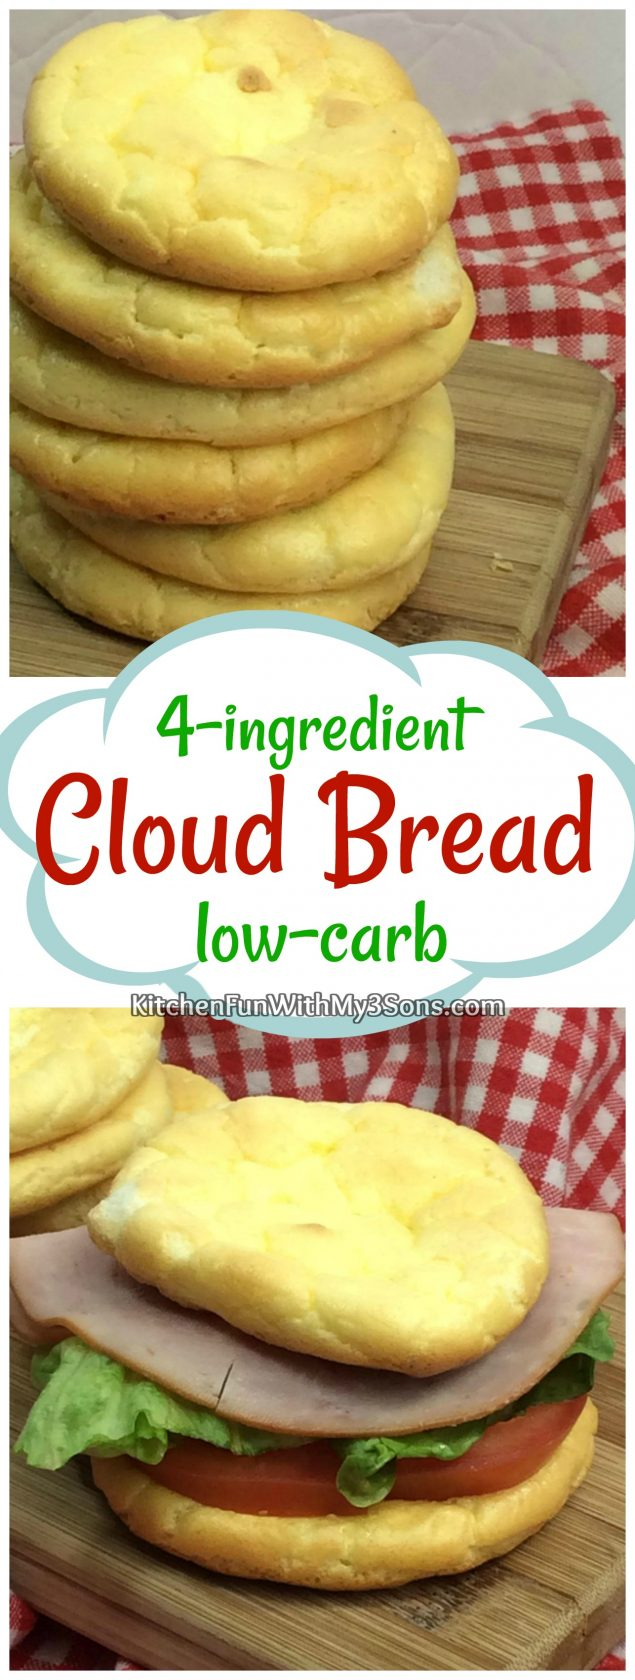 4-ingredient Low-Carb Cloud Bread